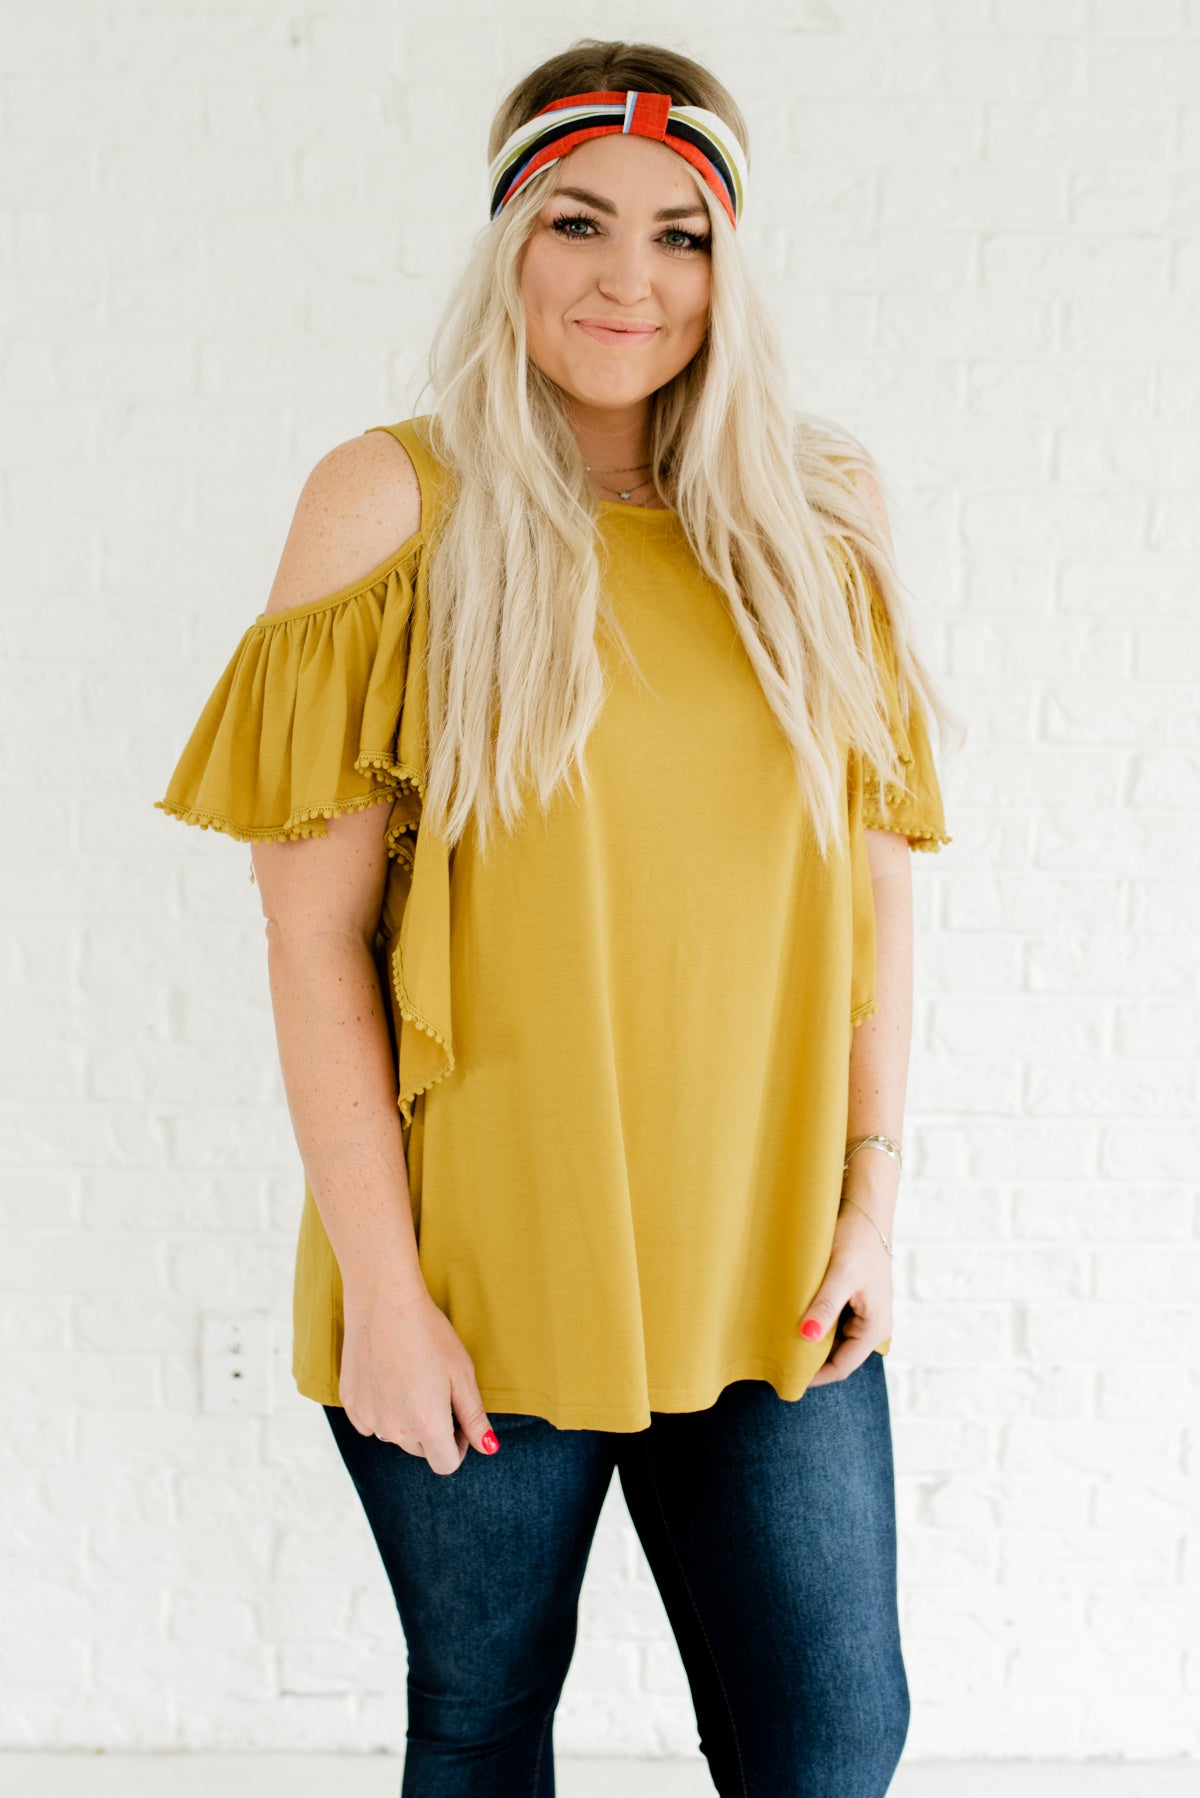 59583c711 Mustard Yellow Cold Shoulder Style Plus Size Boutique Tops for Women